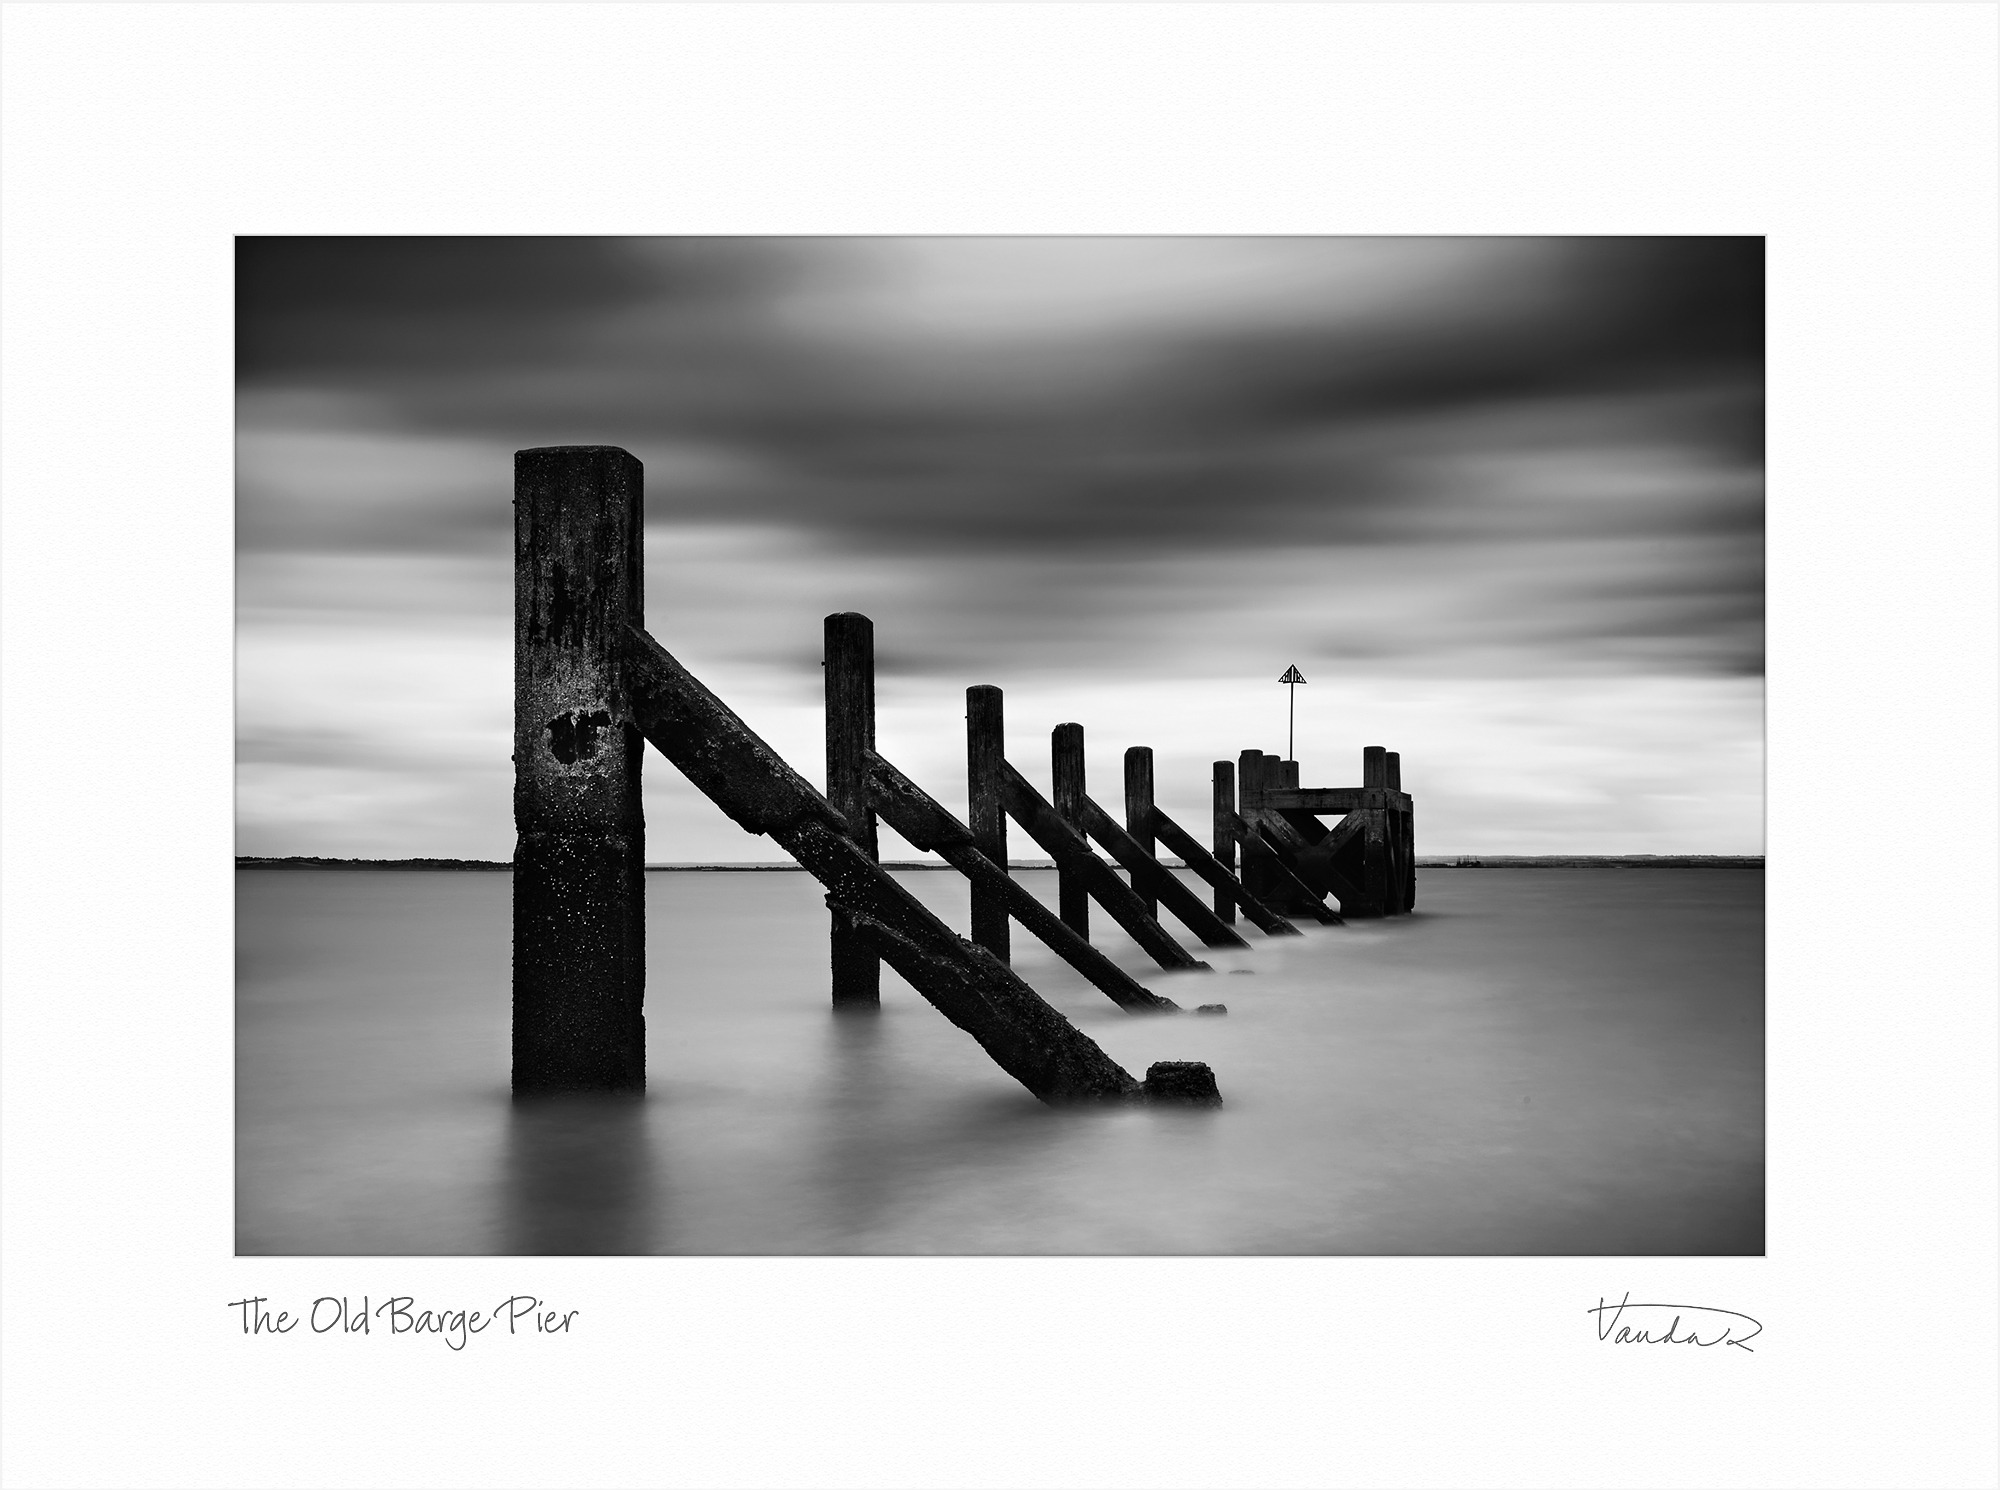 The Old Barge Pier